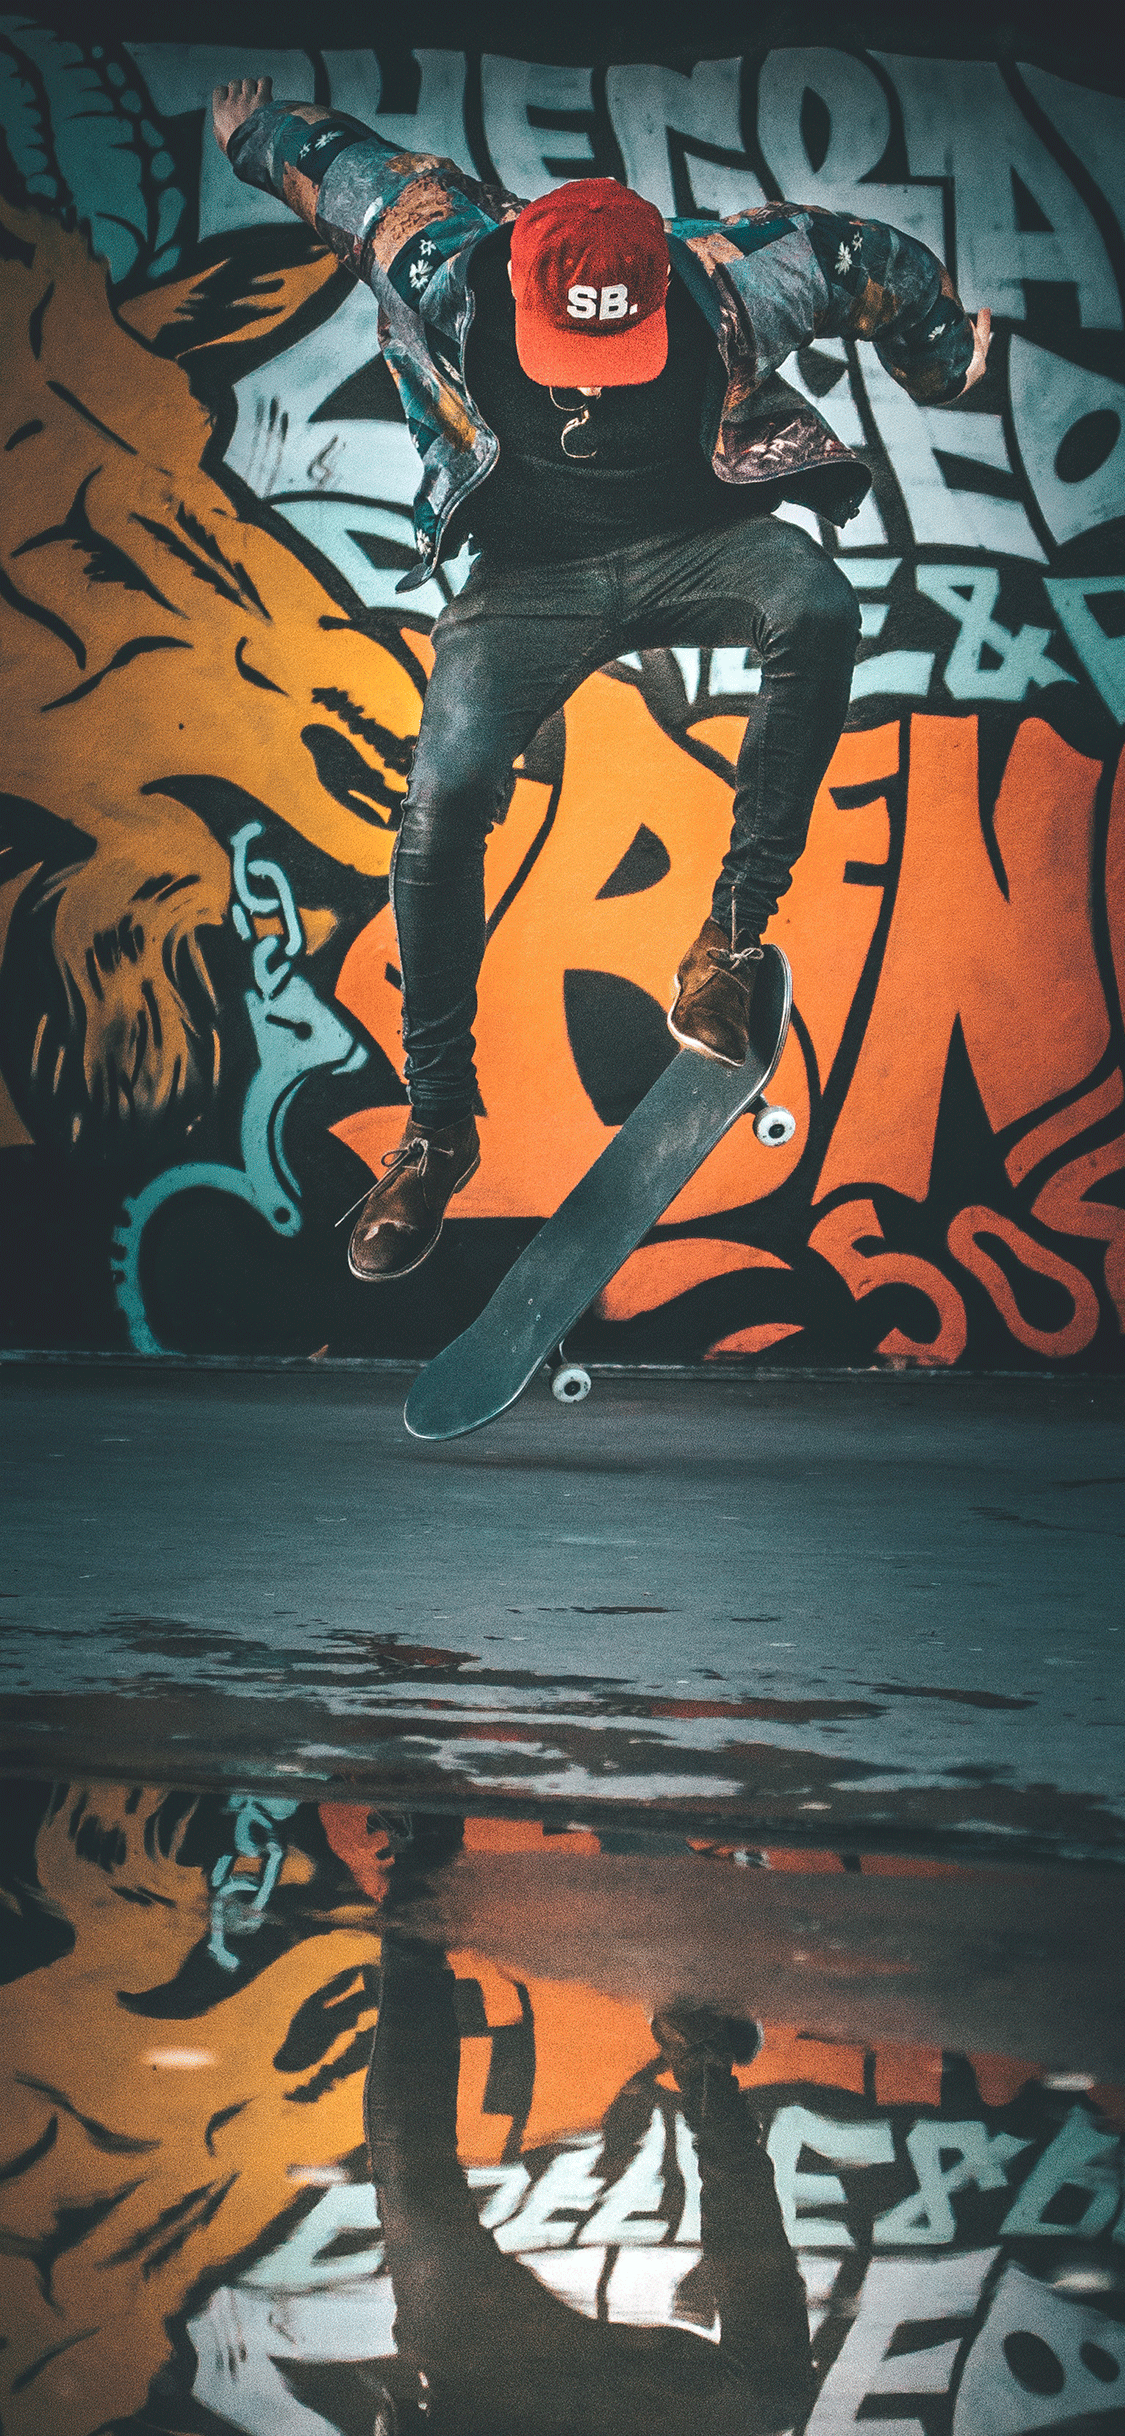 iPhone wallpaper graffiti skater Fonds d'écran iPhone du 25/07/2018